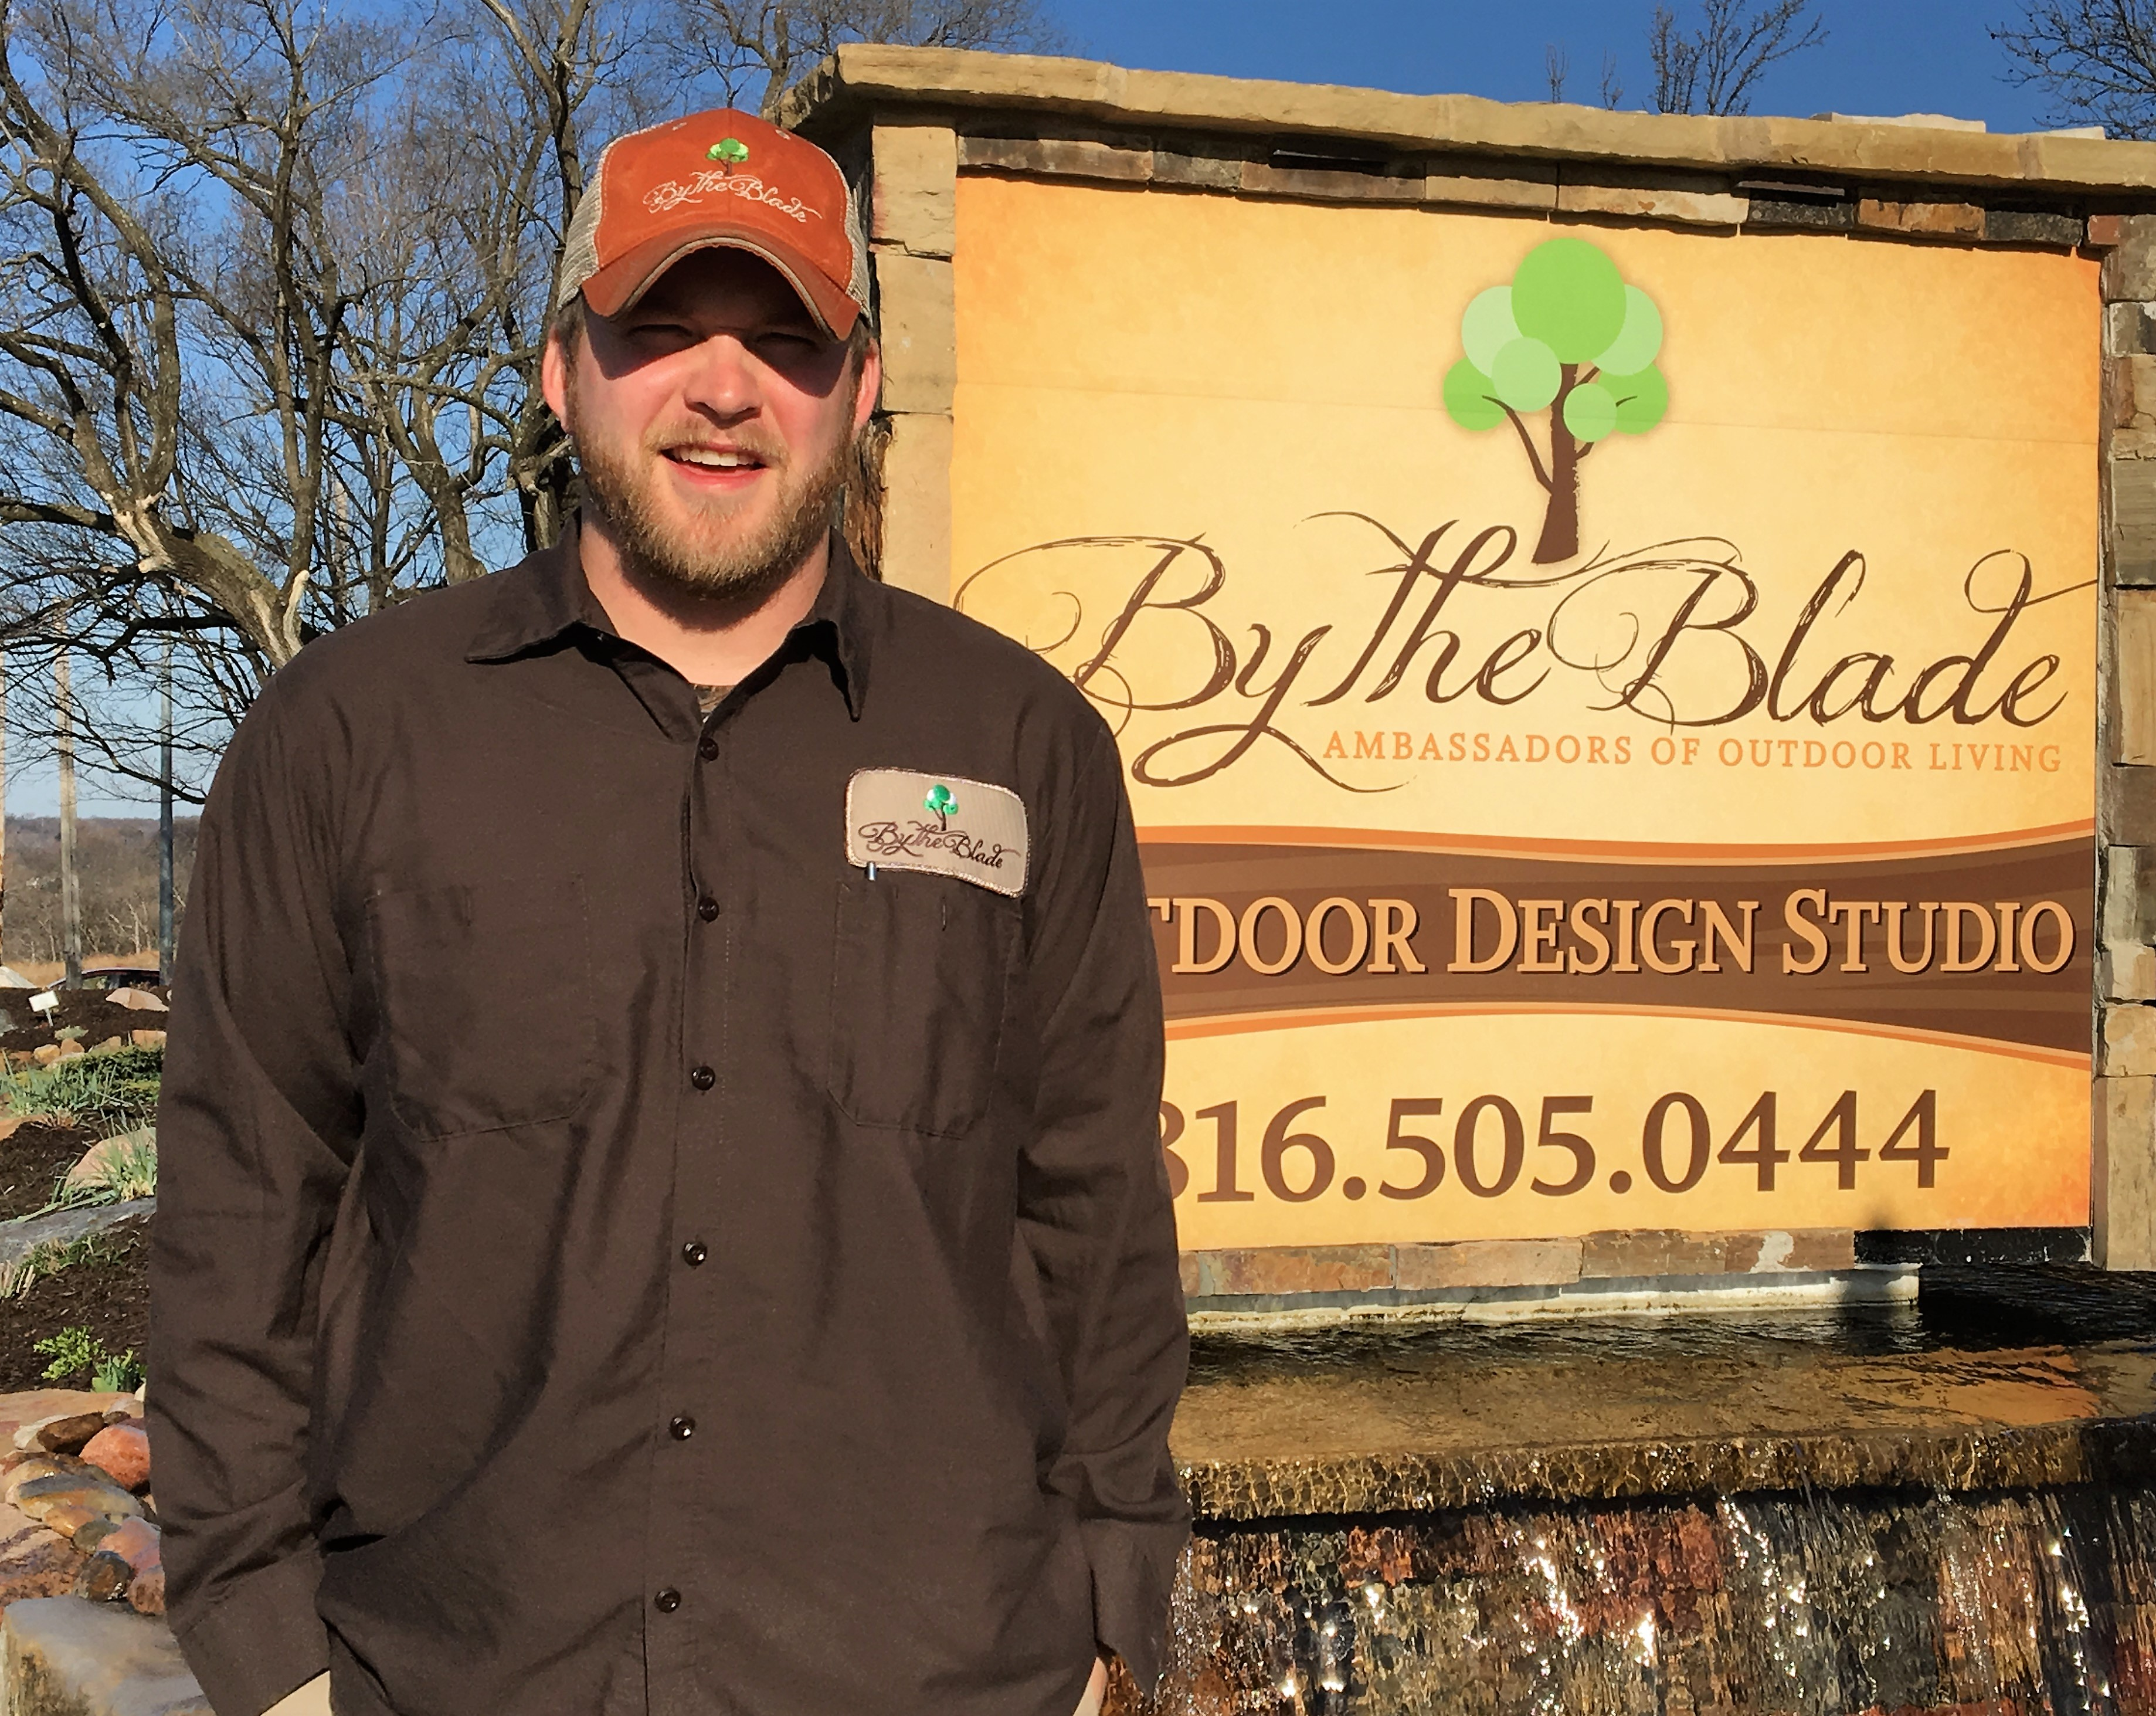 Meet Zach Moore, Lawnscape Technician, 1 year